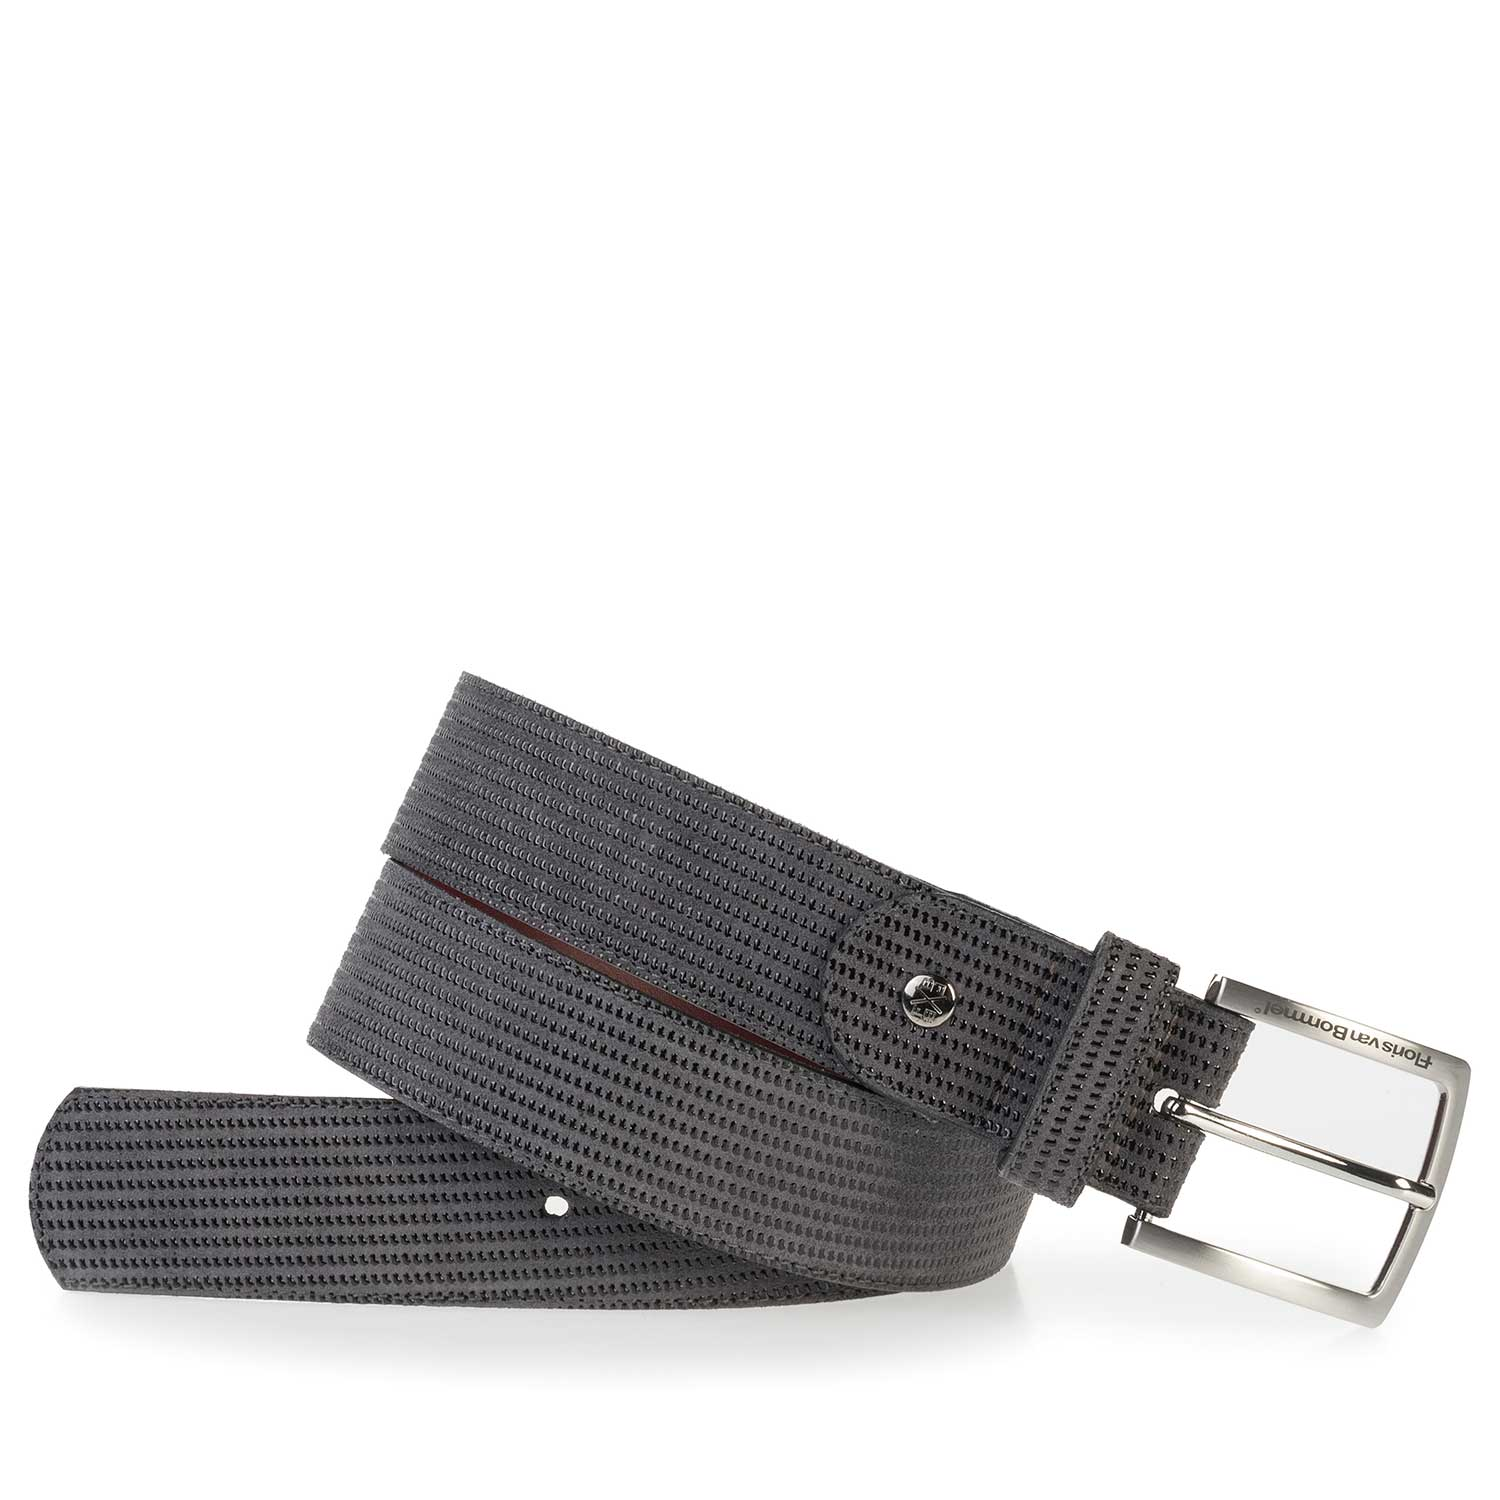 75184/03 - Dark grey, patterned leather belt